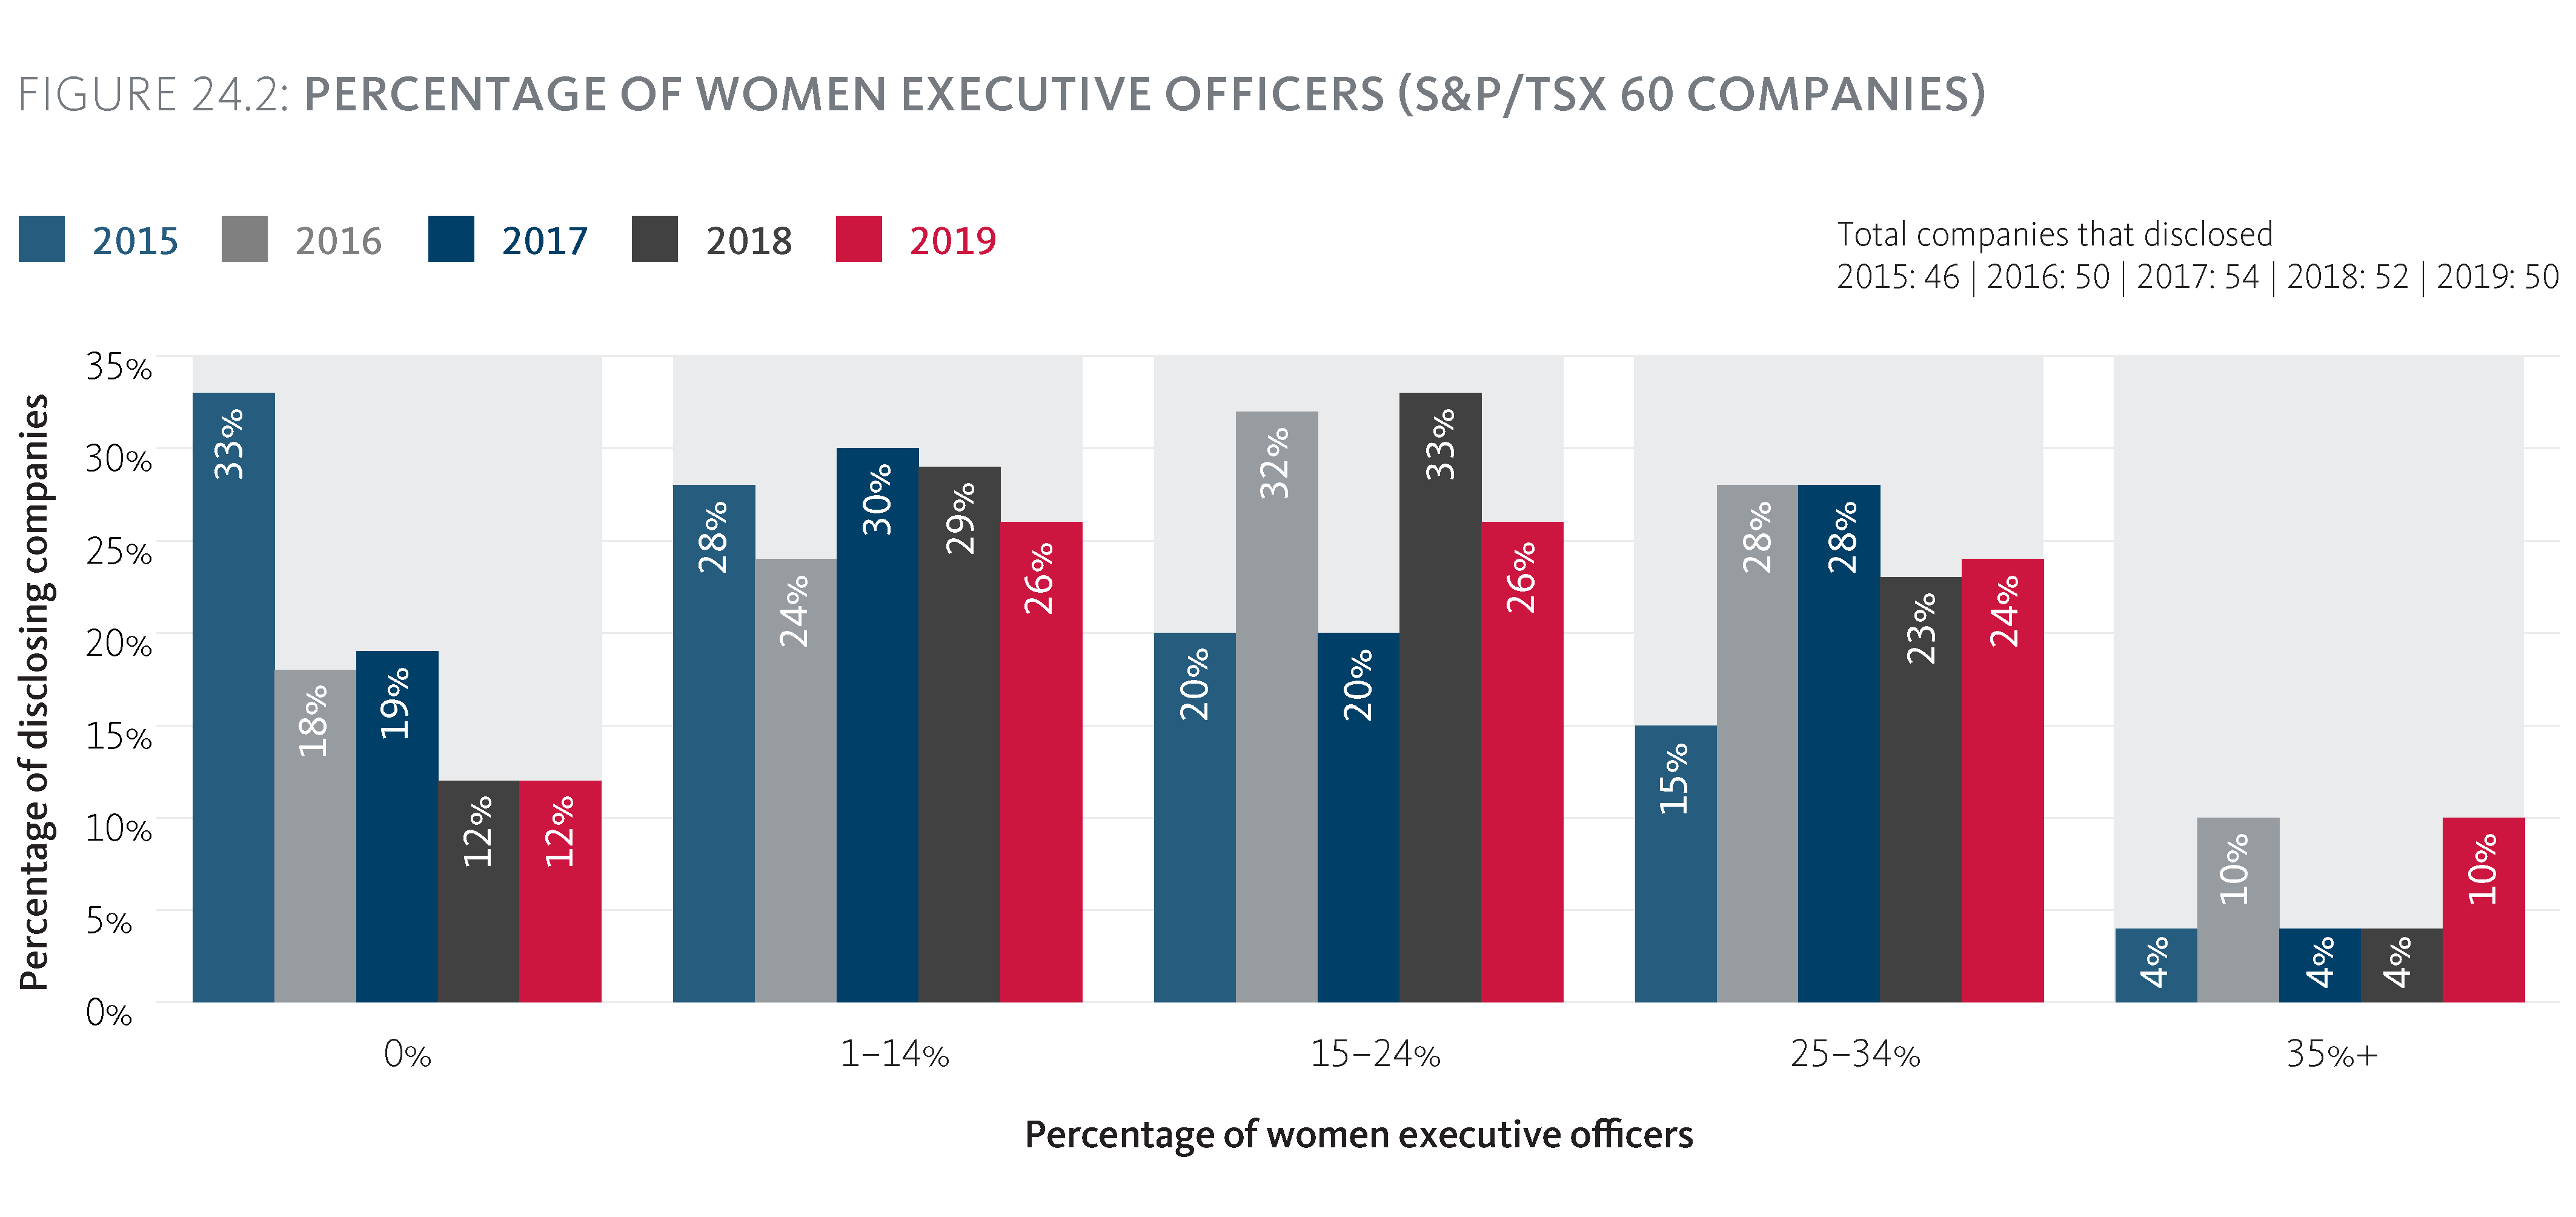 Percentage of women Executive Officers (S&P/TSX 60 companies)